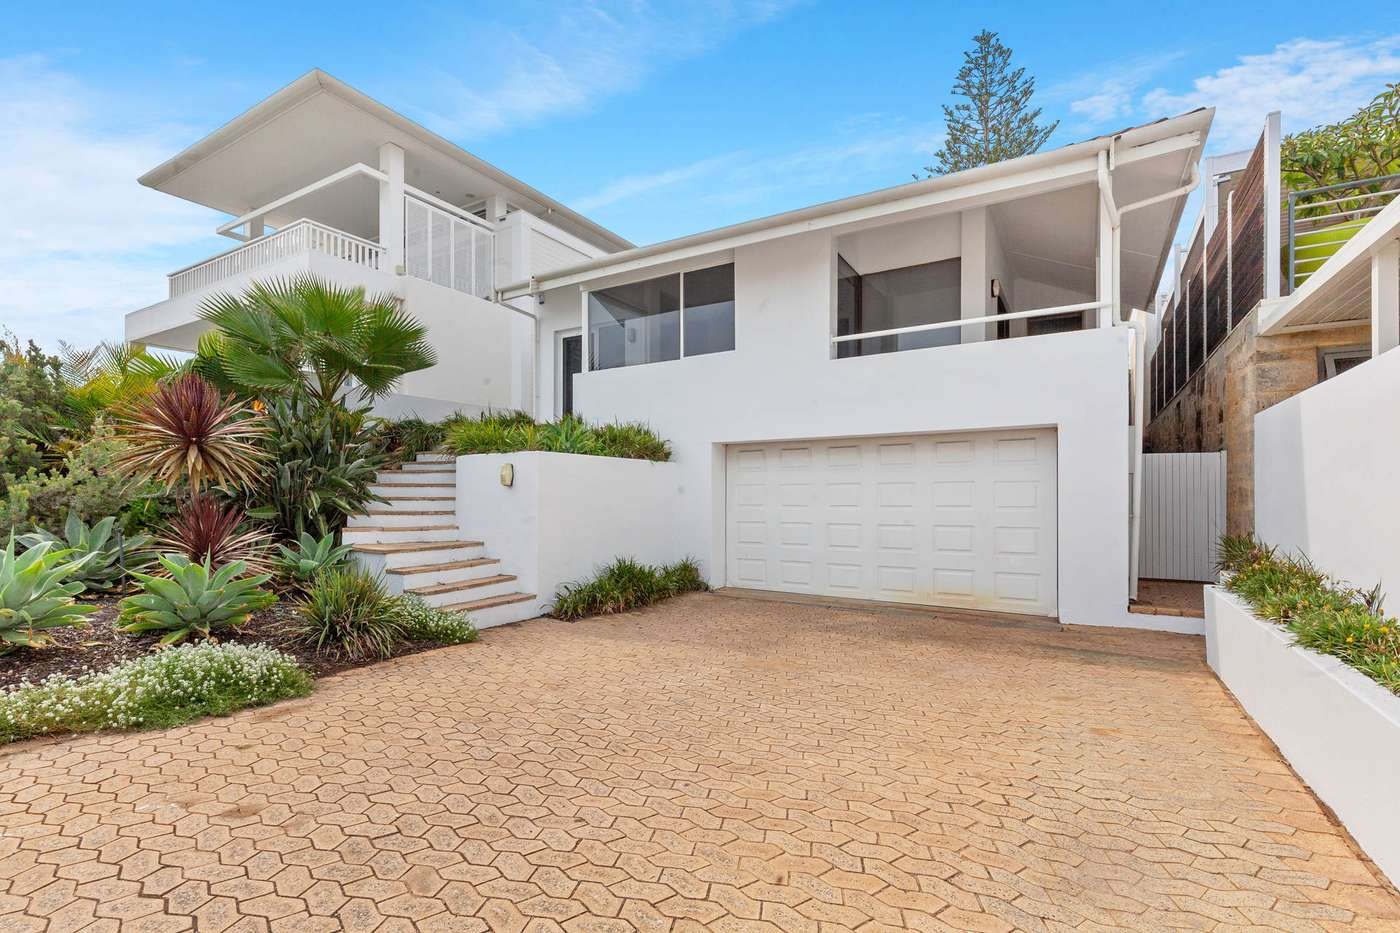 Main view of Homely house listing, 12 Margaret Street, Cottesloe, WA 6011